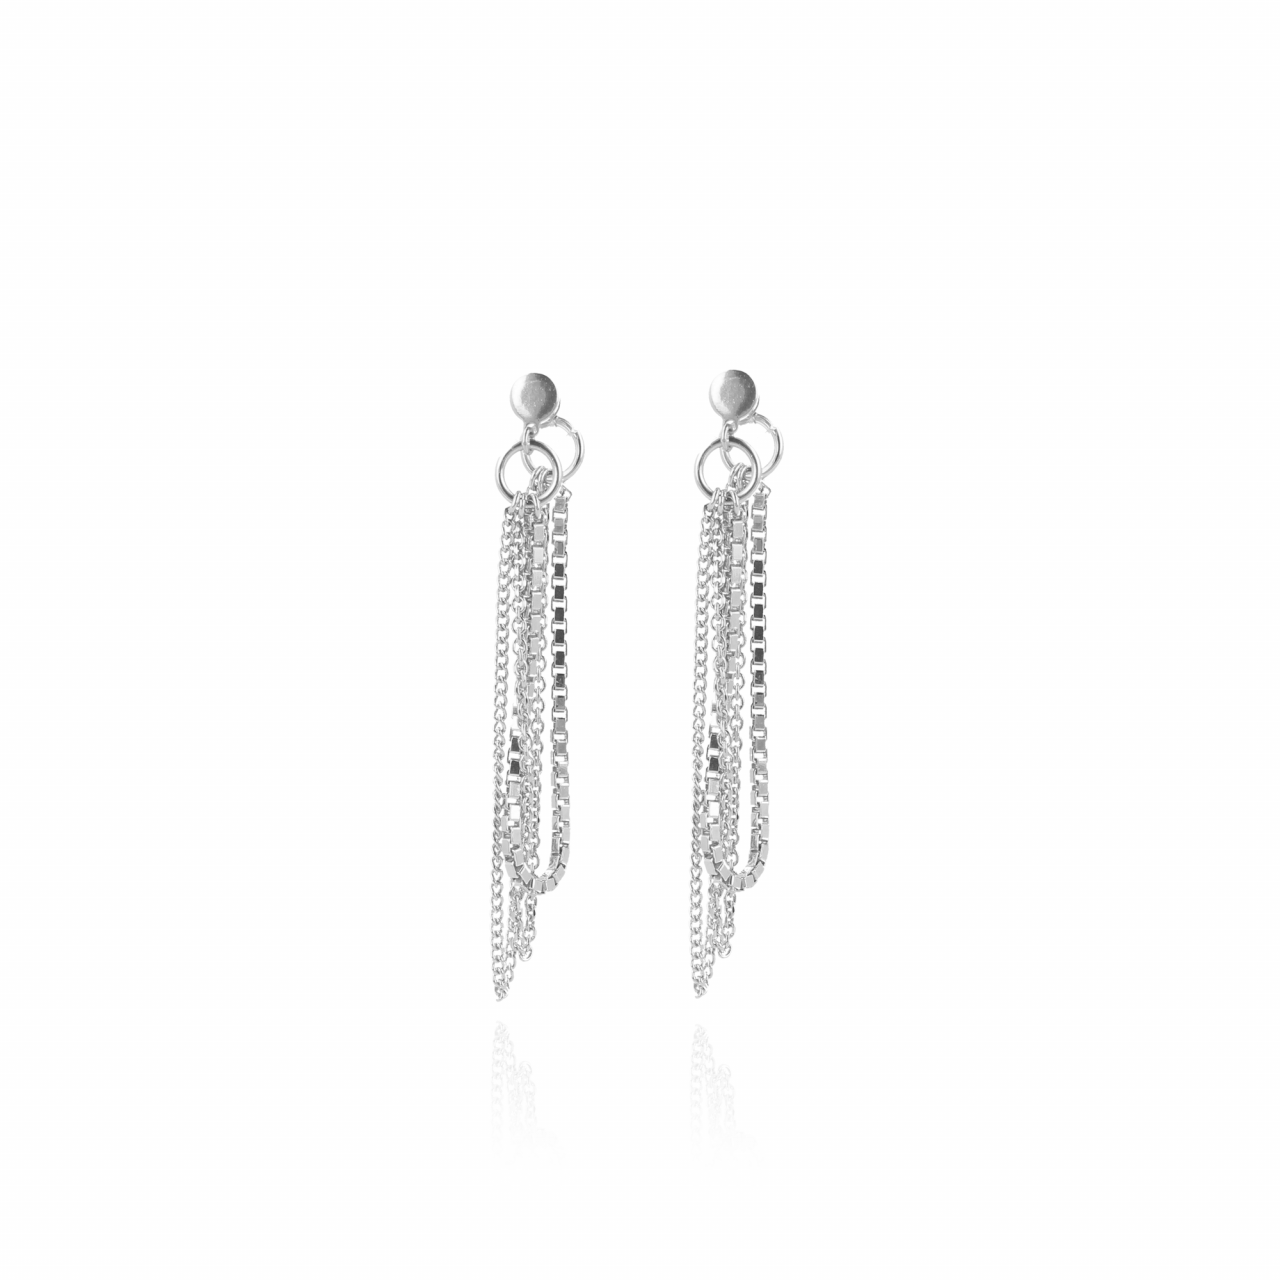 Silver venetian triple chain earrings